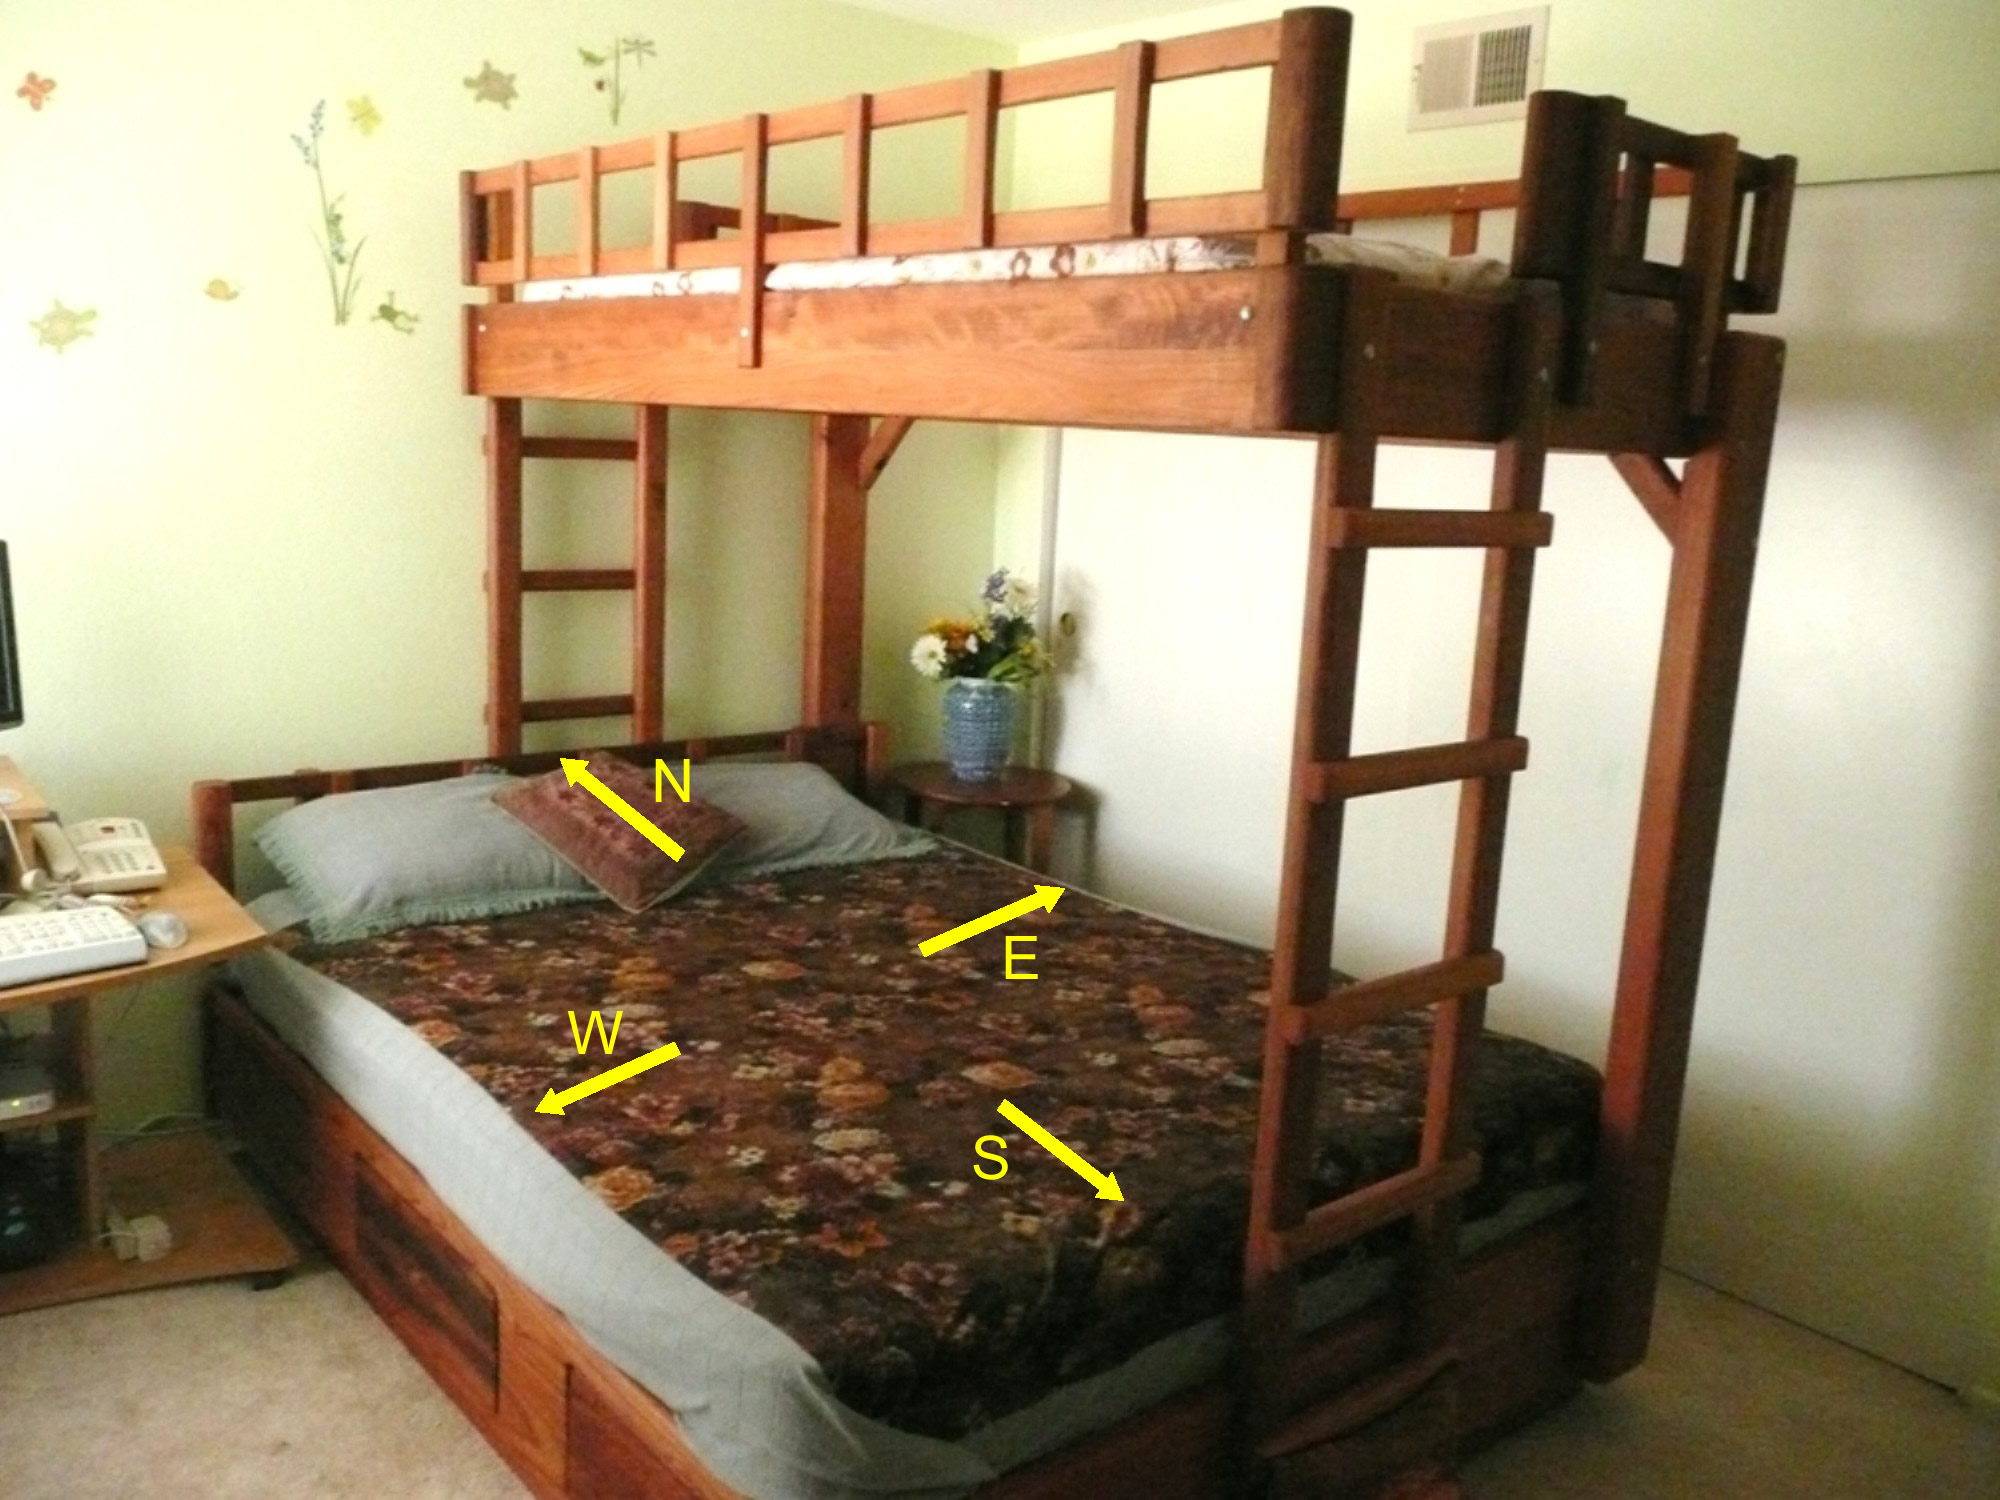 Design Loft Bed Queen Size wooden bunk beds forever redwood photo shows headboard option